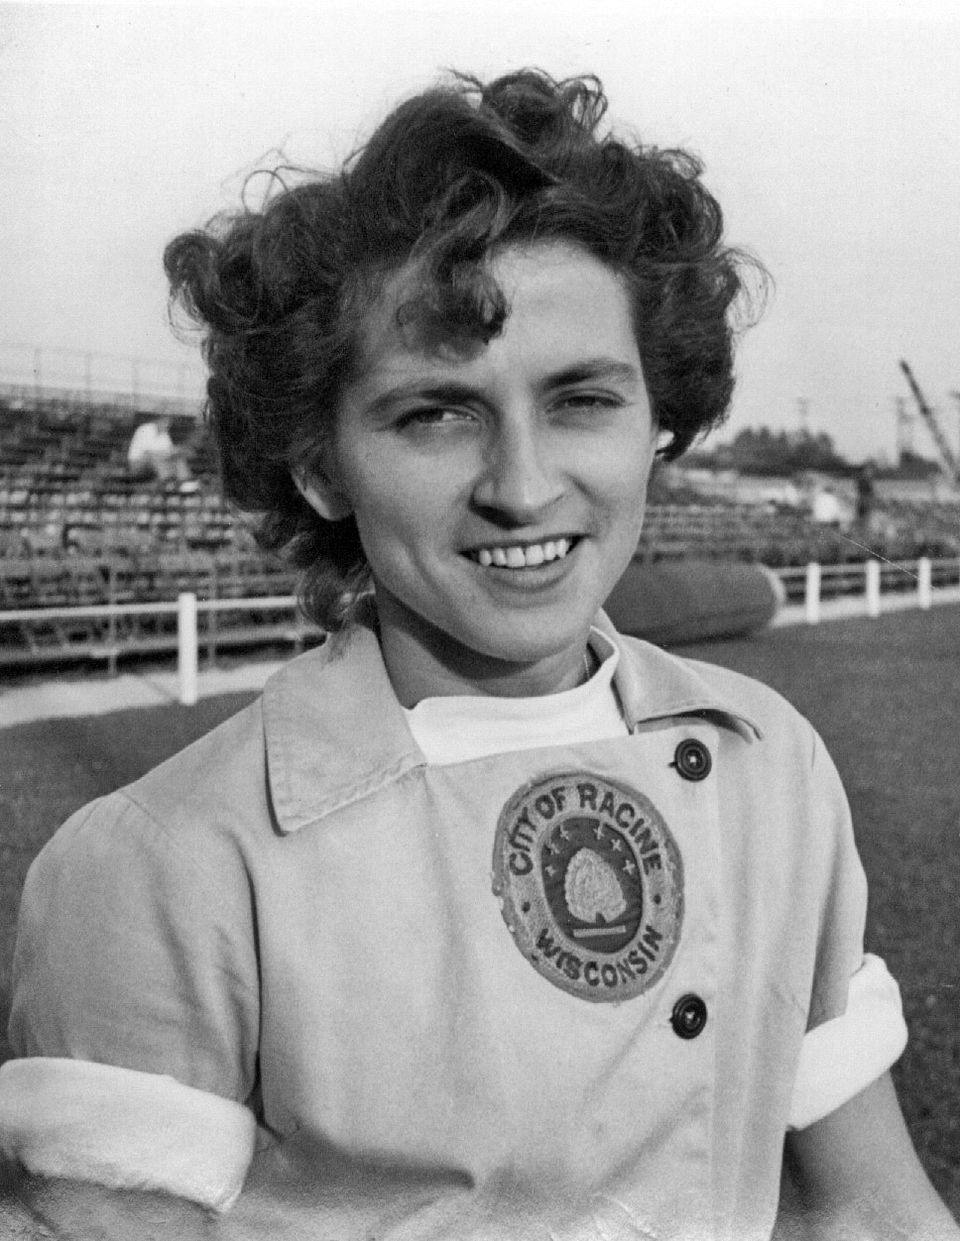 A native of Flint, Michigan, Sophie  Kurys was by far the greatest base stealer in the All-American Girls Professional Baseball League history. She was nicknamed Tina Cobb or the Flint Flash for her swiftness in stealing bases, because once she reached base she was virtually unstoppable. Eighty percent of the time she stole at least one base, averaging 150 steals per season between 1944 and 1950, with a career-high 201 in 1946. Besides this, she amassed a World Record with a career 1,114 stolen bases, more than Ty Cobb (892), and later more than both Lou Brock (938) and Japanese star Yutaka Fukumoto (1,065), until her mark was surpassed by Rickey Henderson in 1994. Her 201 stolen bases in a single season still stands as a professional record, collecting 71 more than Henderson (130), who set the Major League Baseball single-season record in 1982. Her mark of 201 stolen bases (in 203 attempts) was recognized in a 2013 exhibit by the Baseball Hall of Fame. Cincinnati Reds prospect Billy Hamilton set the minor league mark in 2012 with 155, while Rickey Henderson holds the modern major league record with 130. Kurys was a longtime resident of Scottsdale, Arizona, where she died in 2013 at the age of 87, following complications from surgery.